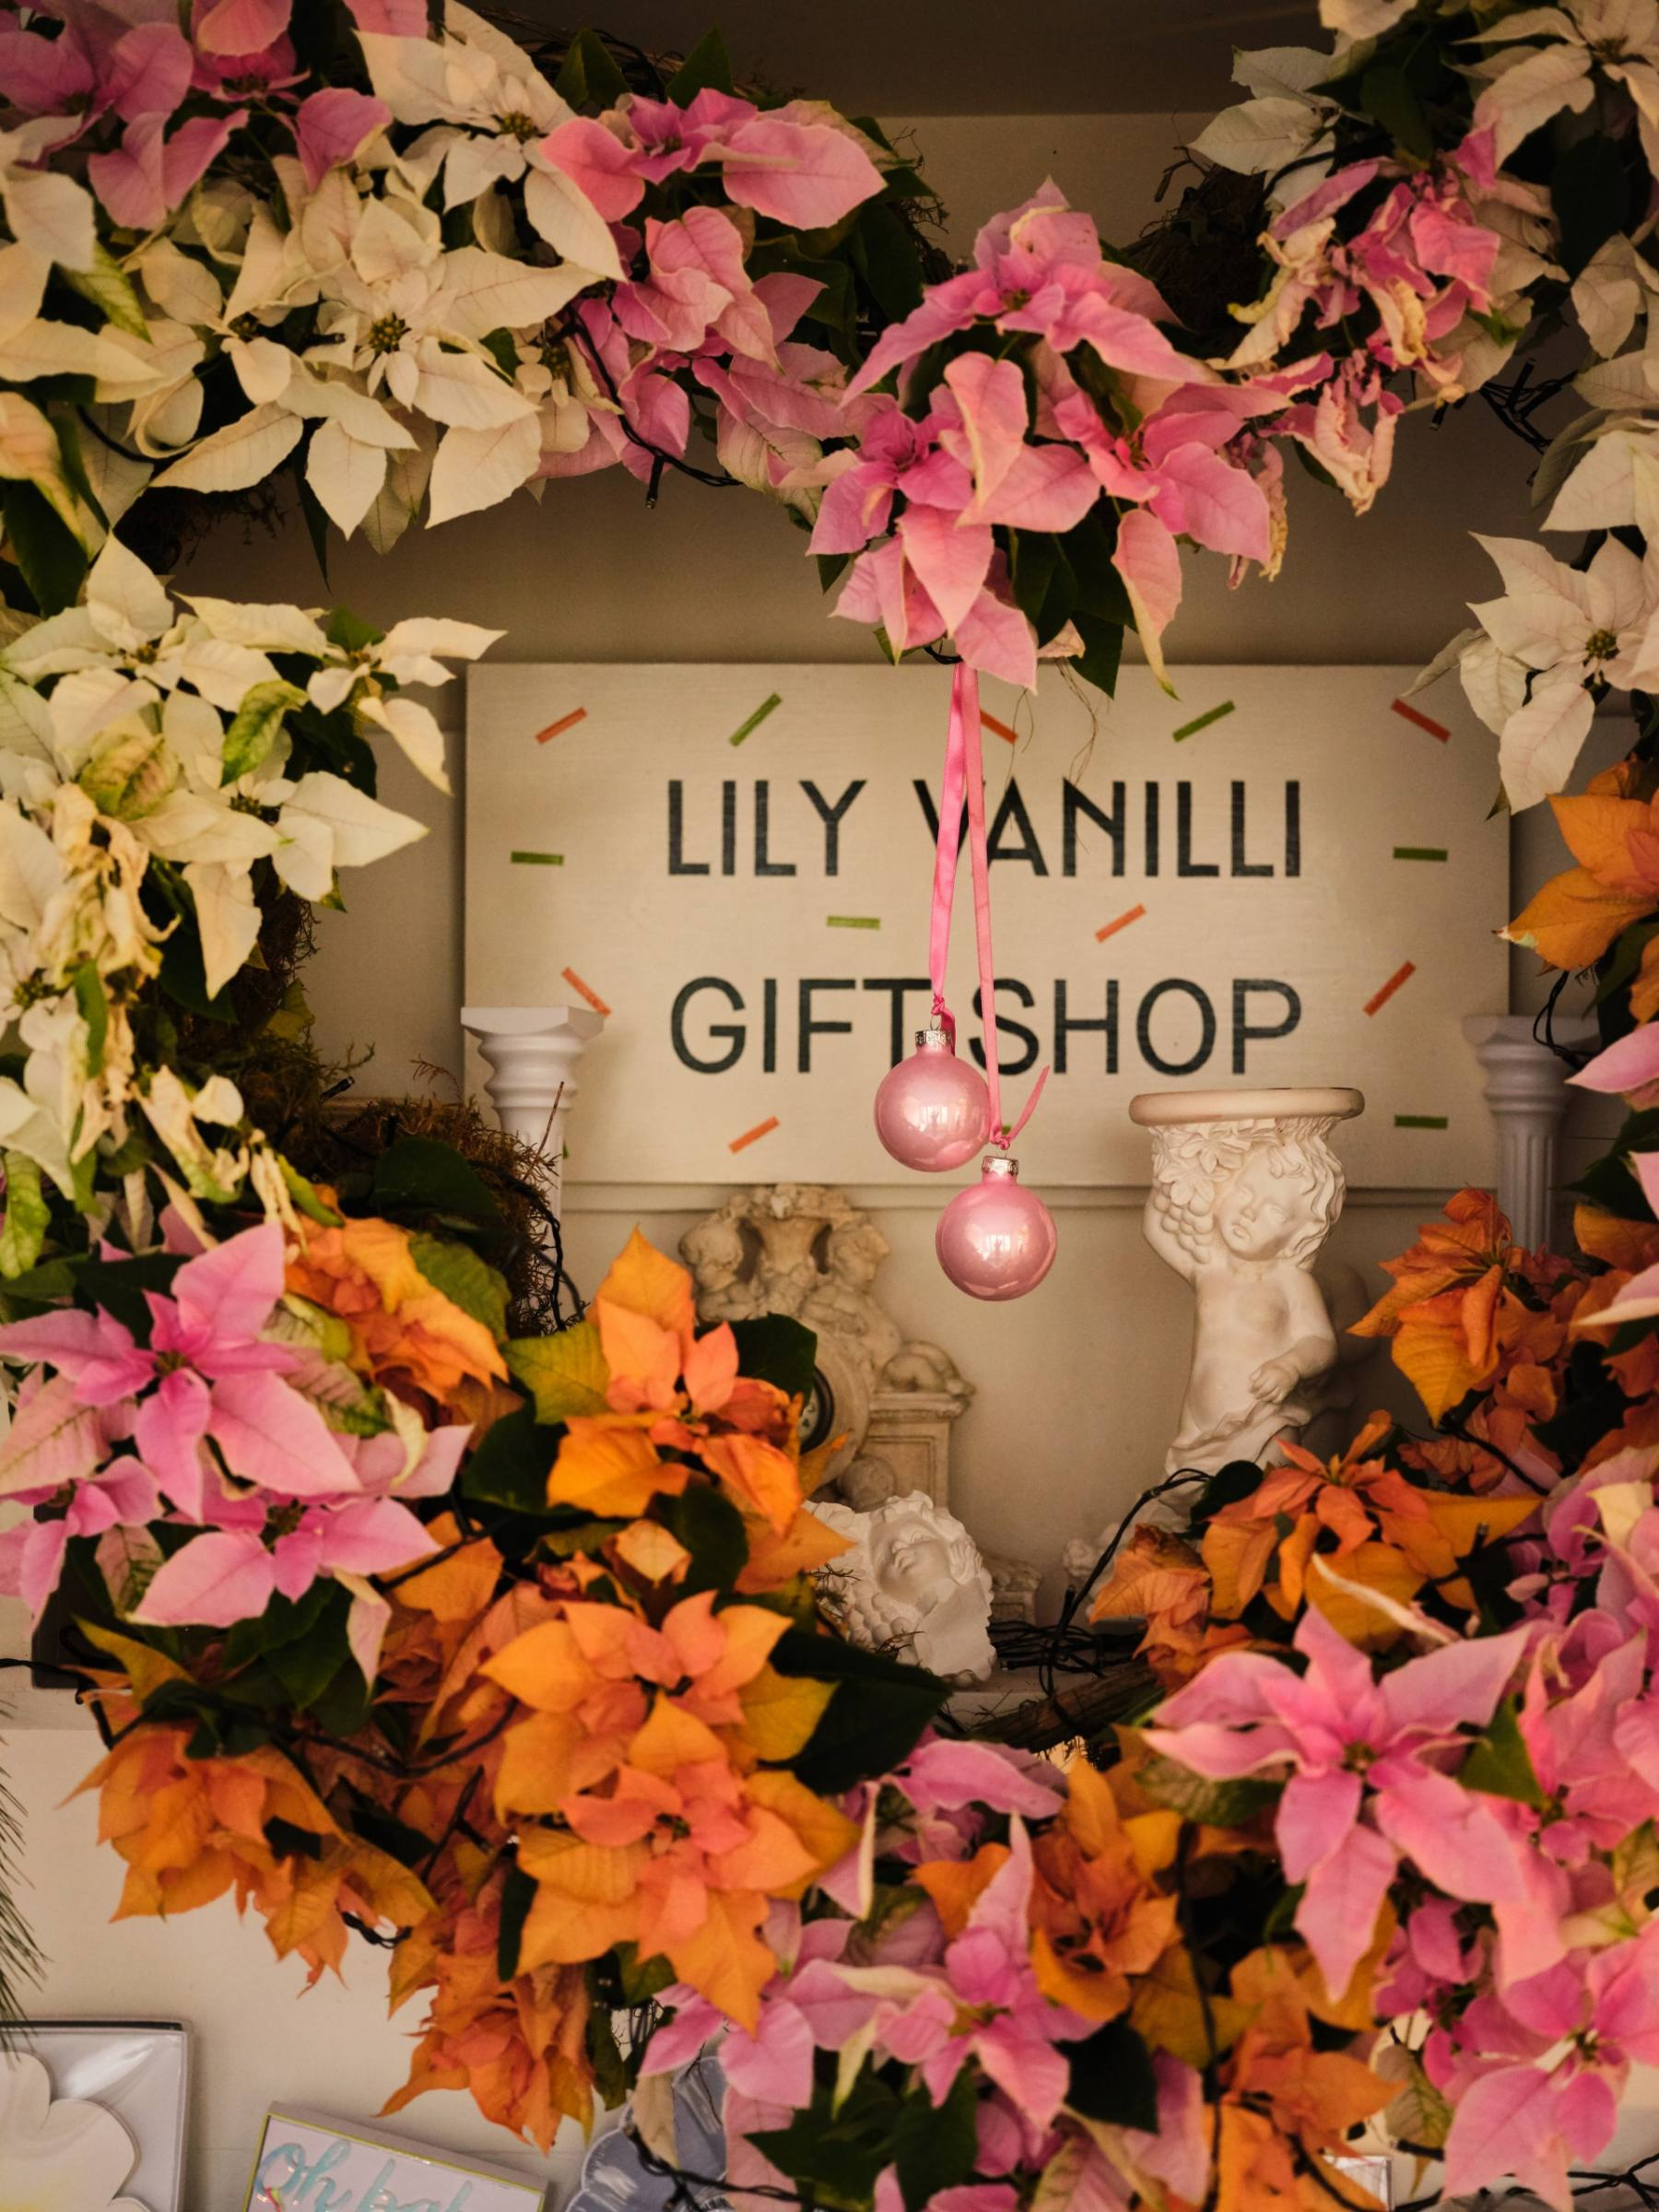 The Lily Vanilli Gift Shop